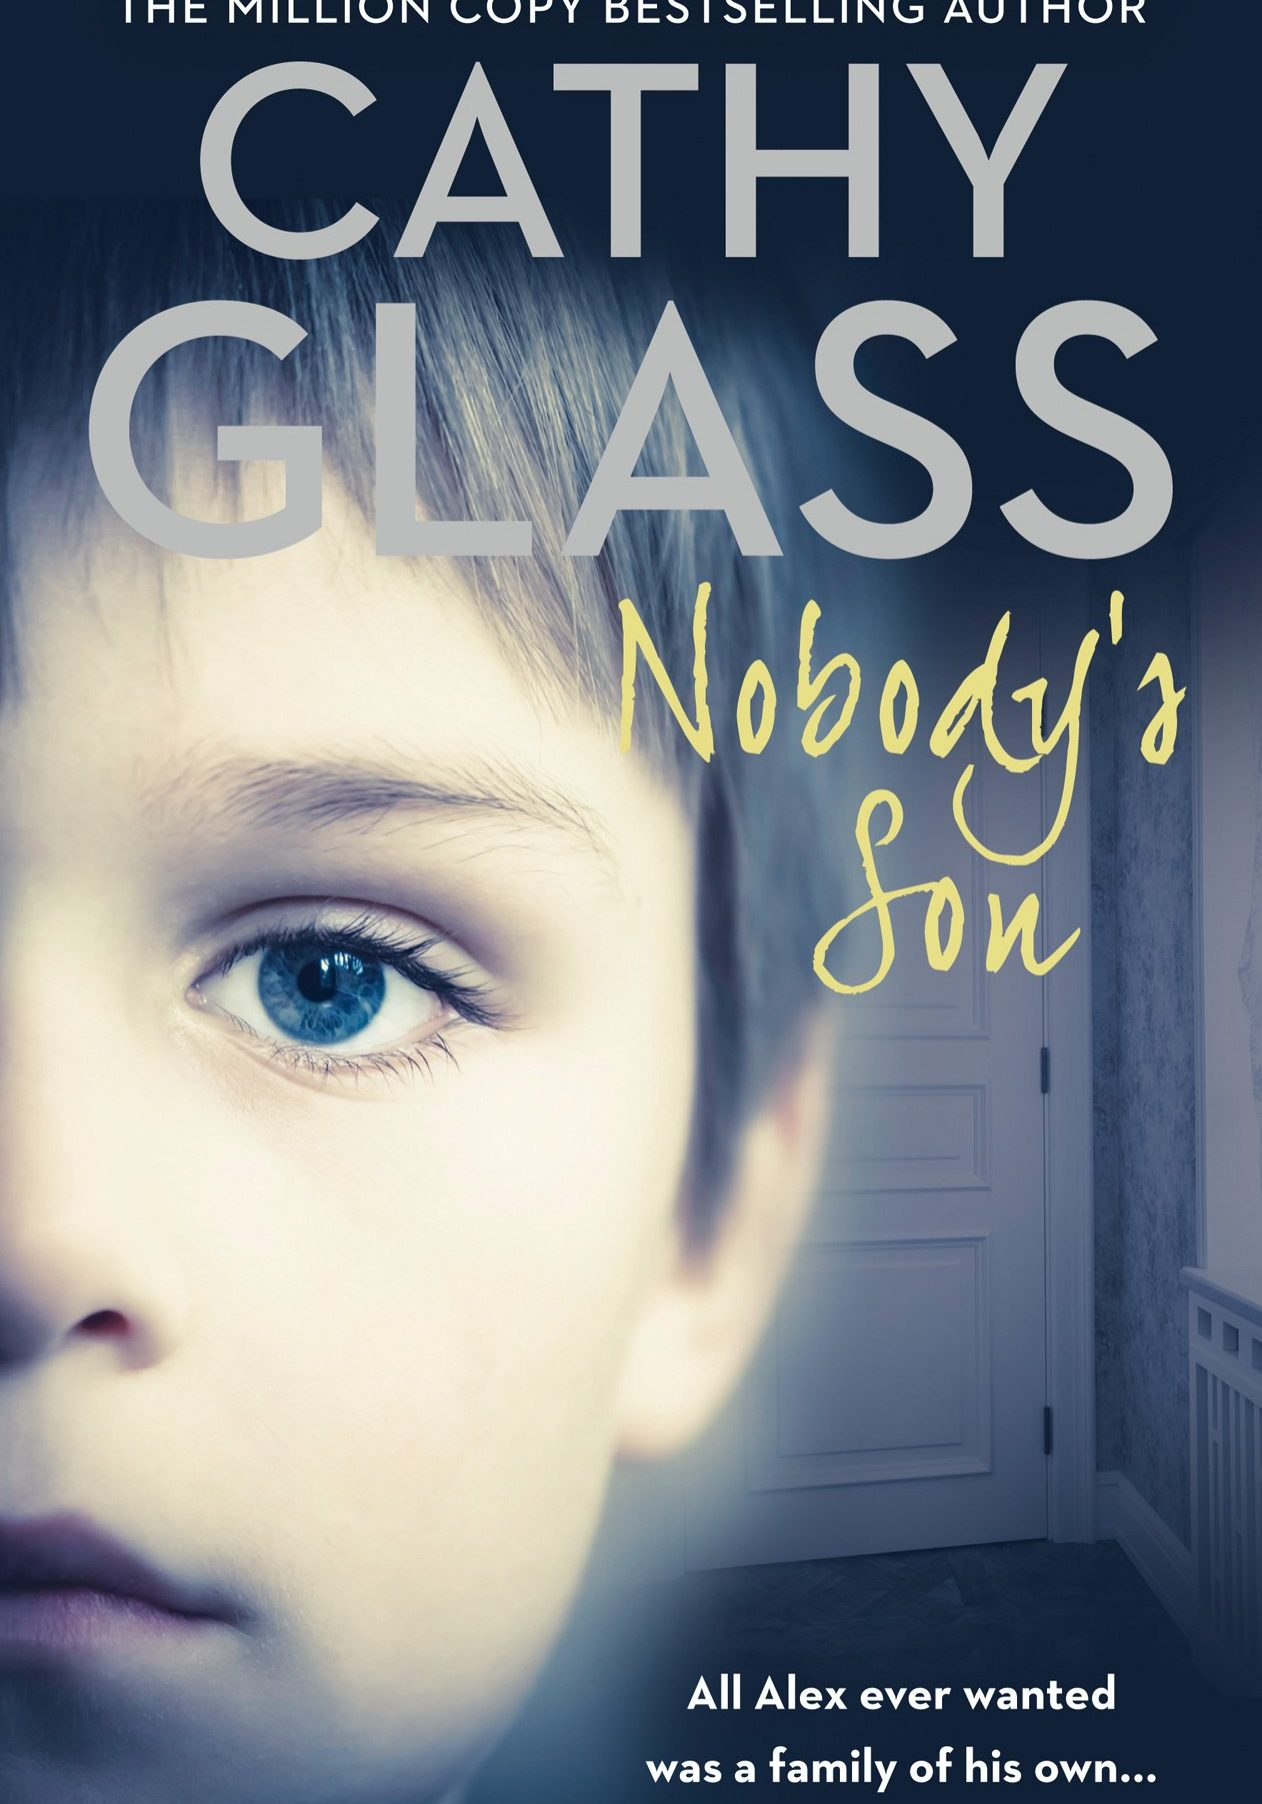 Glass - Nobodys Son